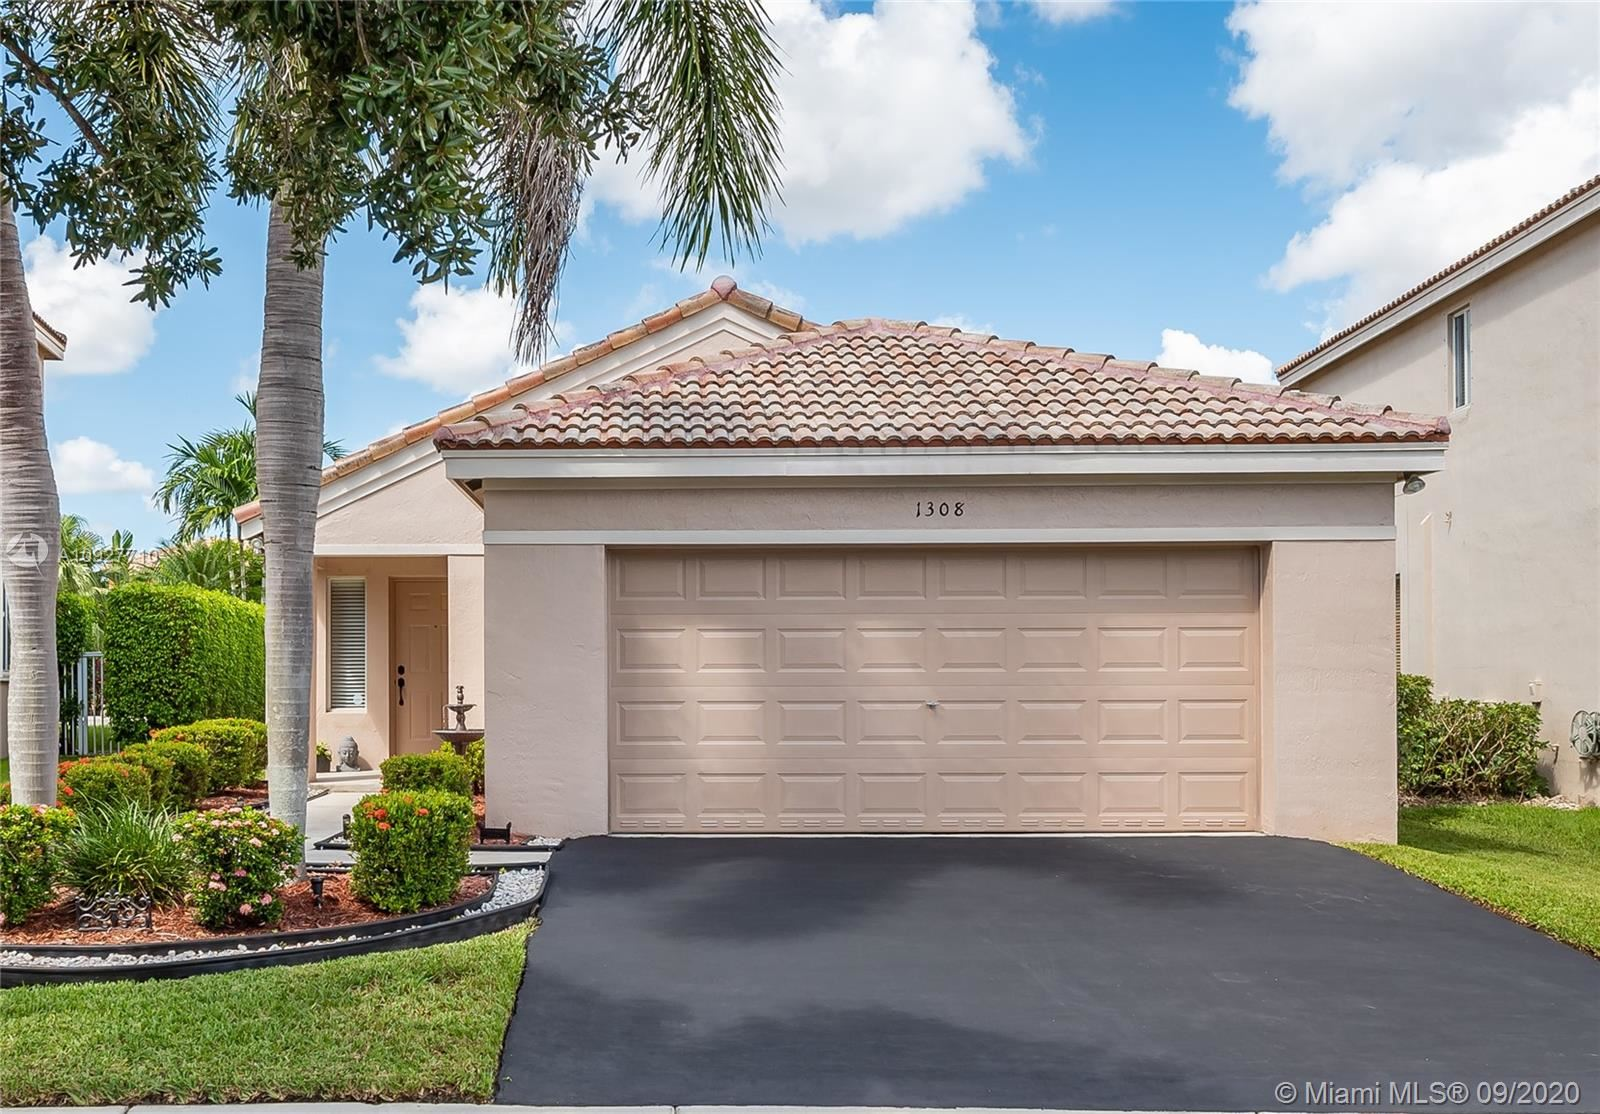 Photo of 1308 Alexander Bnd, Weston, FL 33327 (MLS # A10927710)